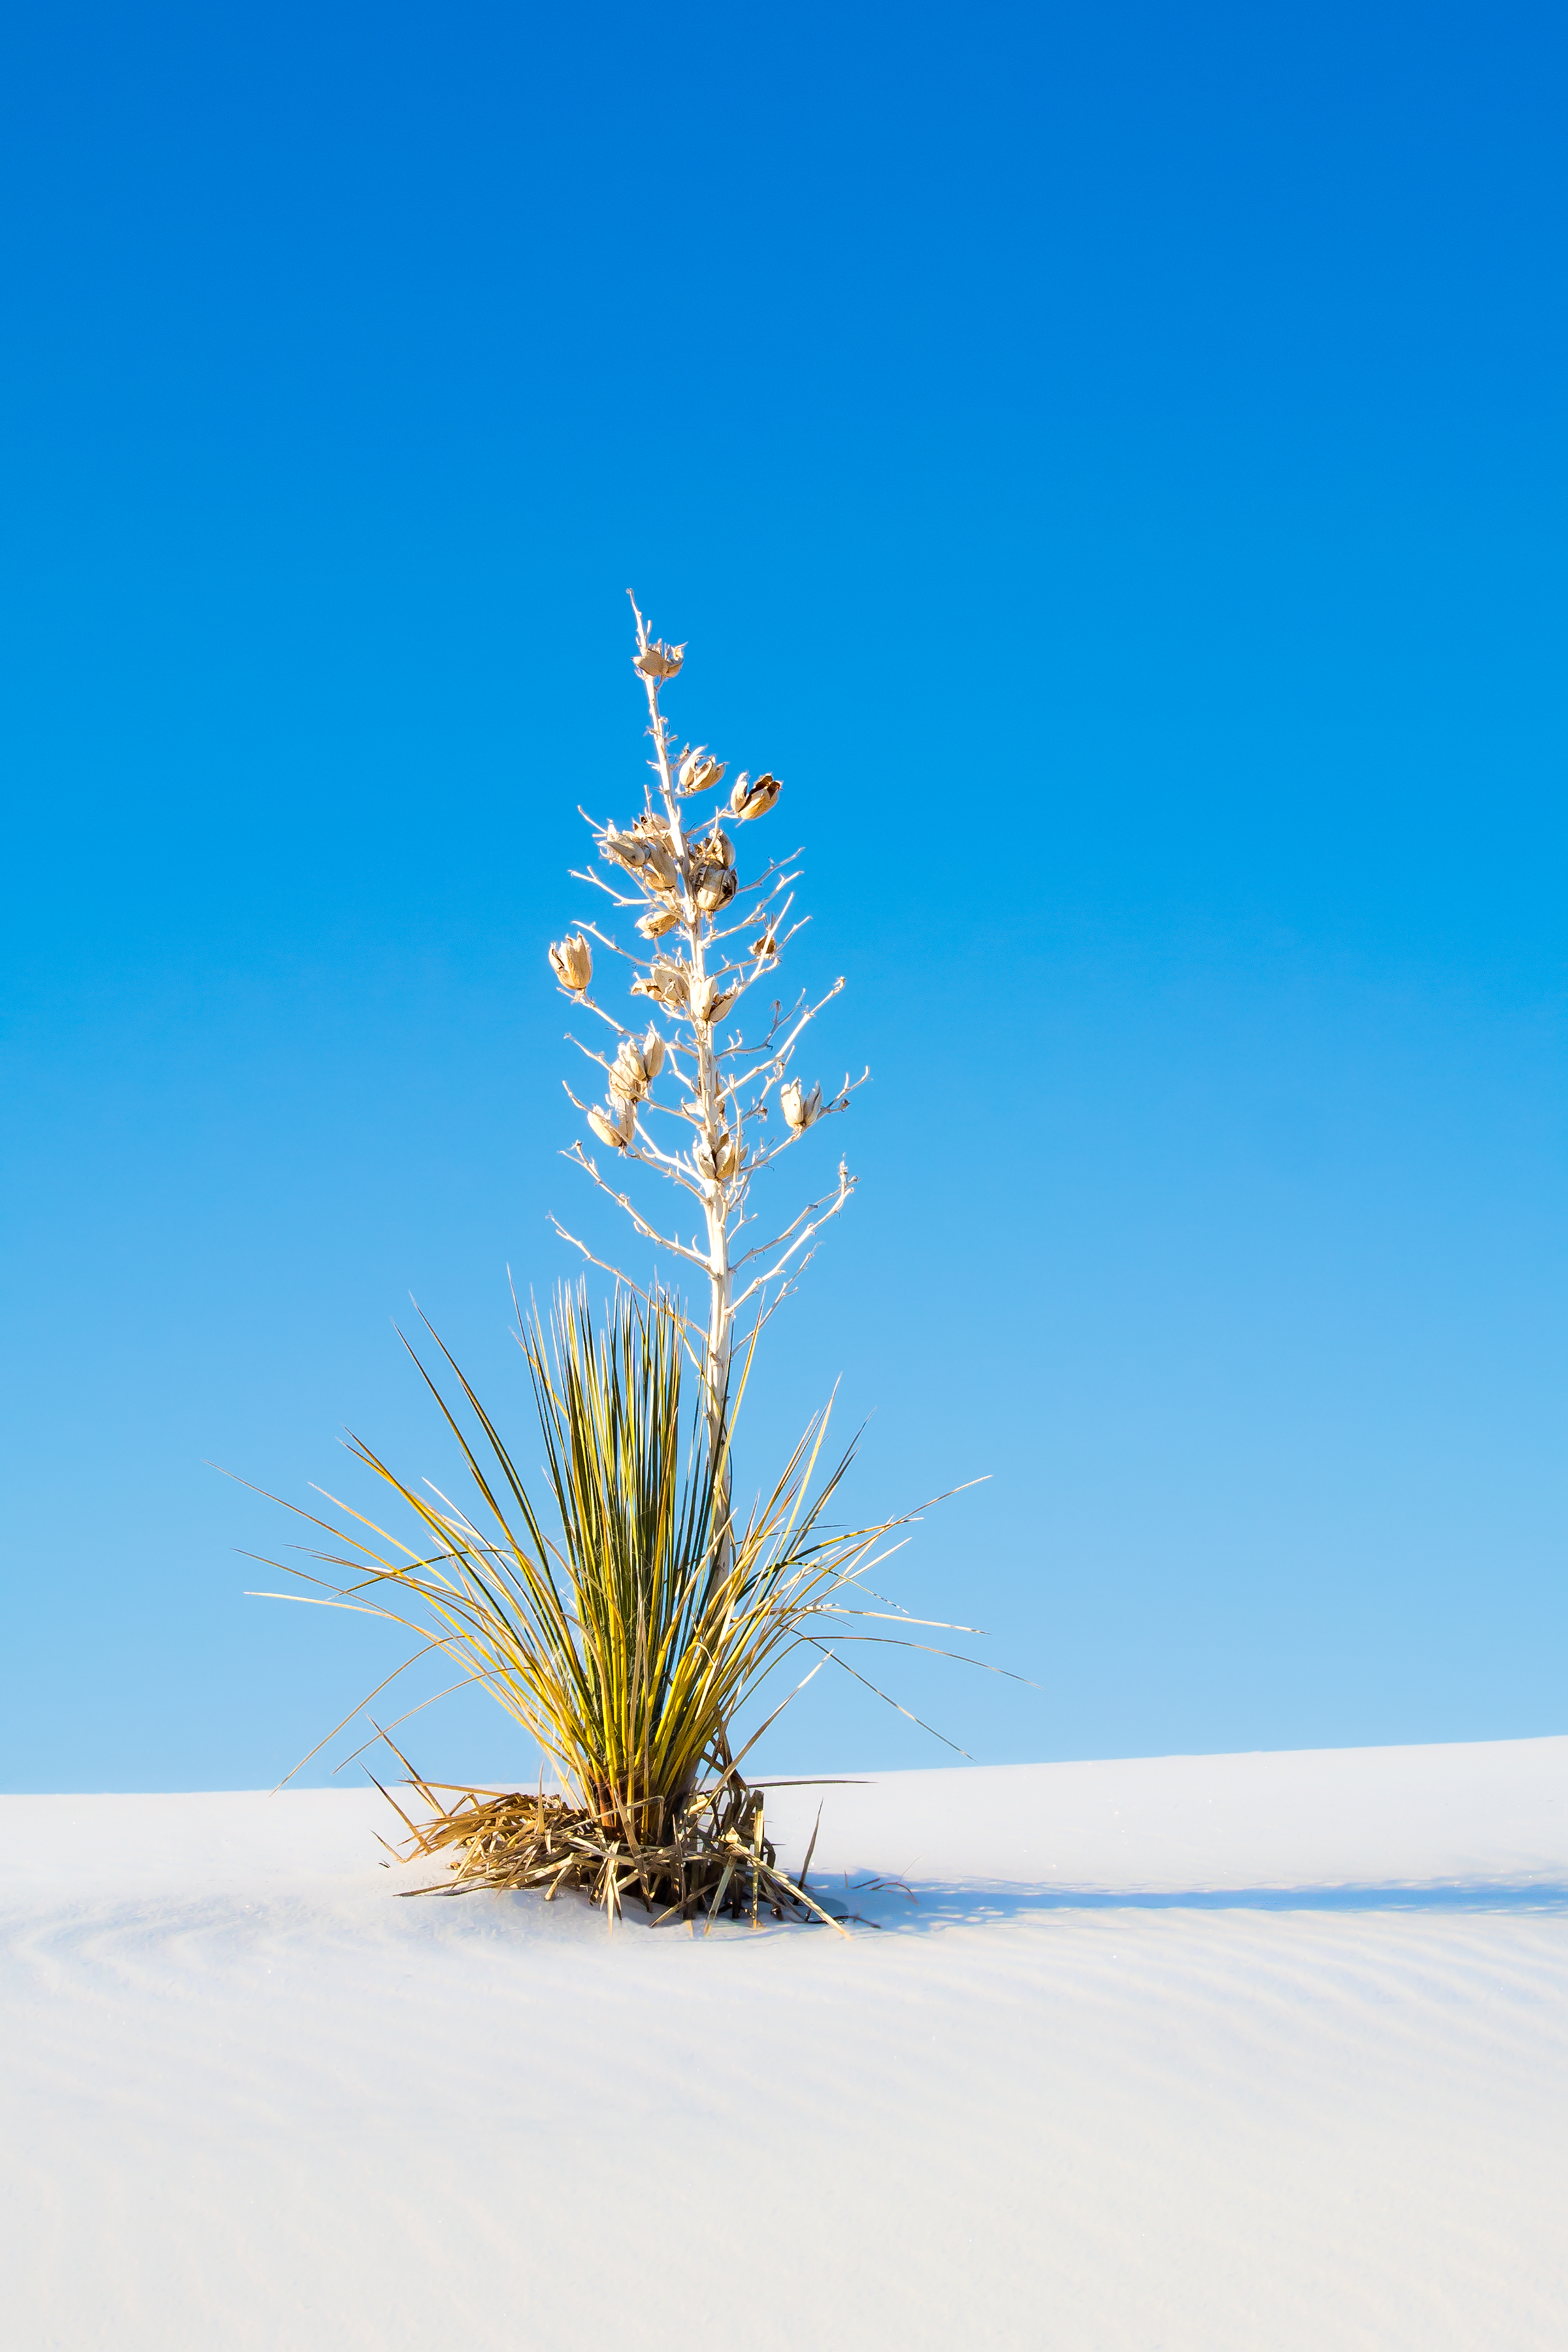 ORT OF A MONUMENT - I took this shot in White Sands National Monument in New Mexico.